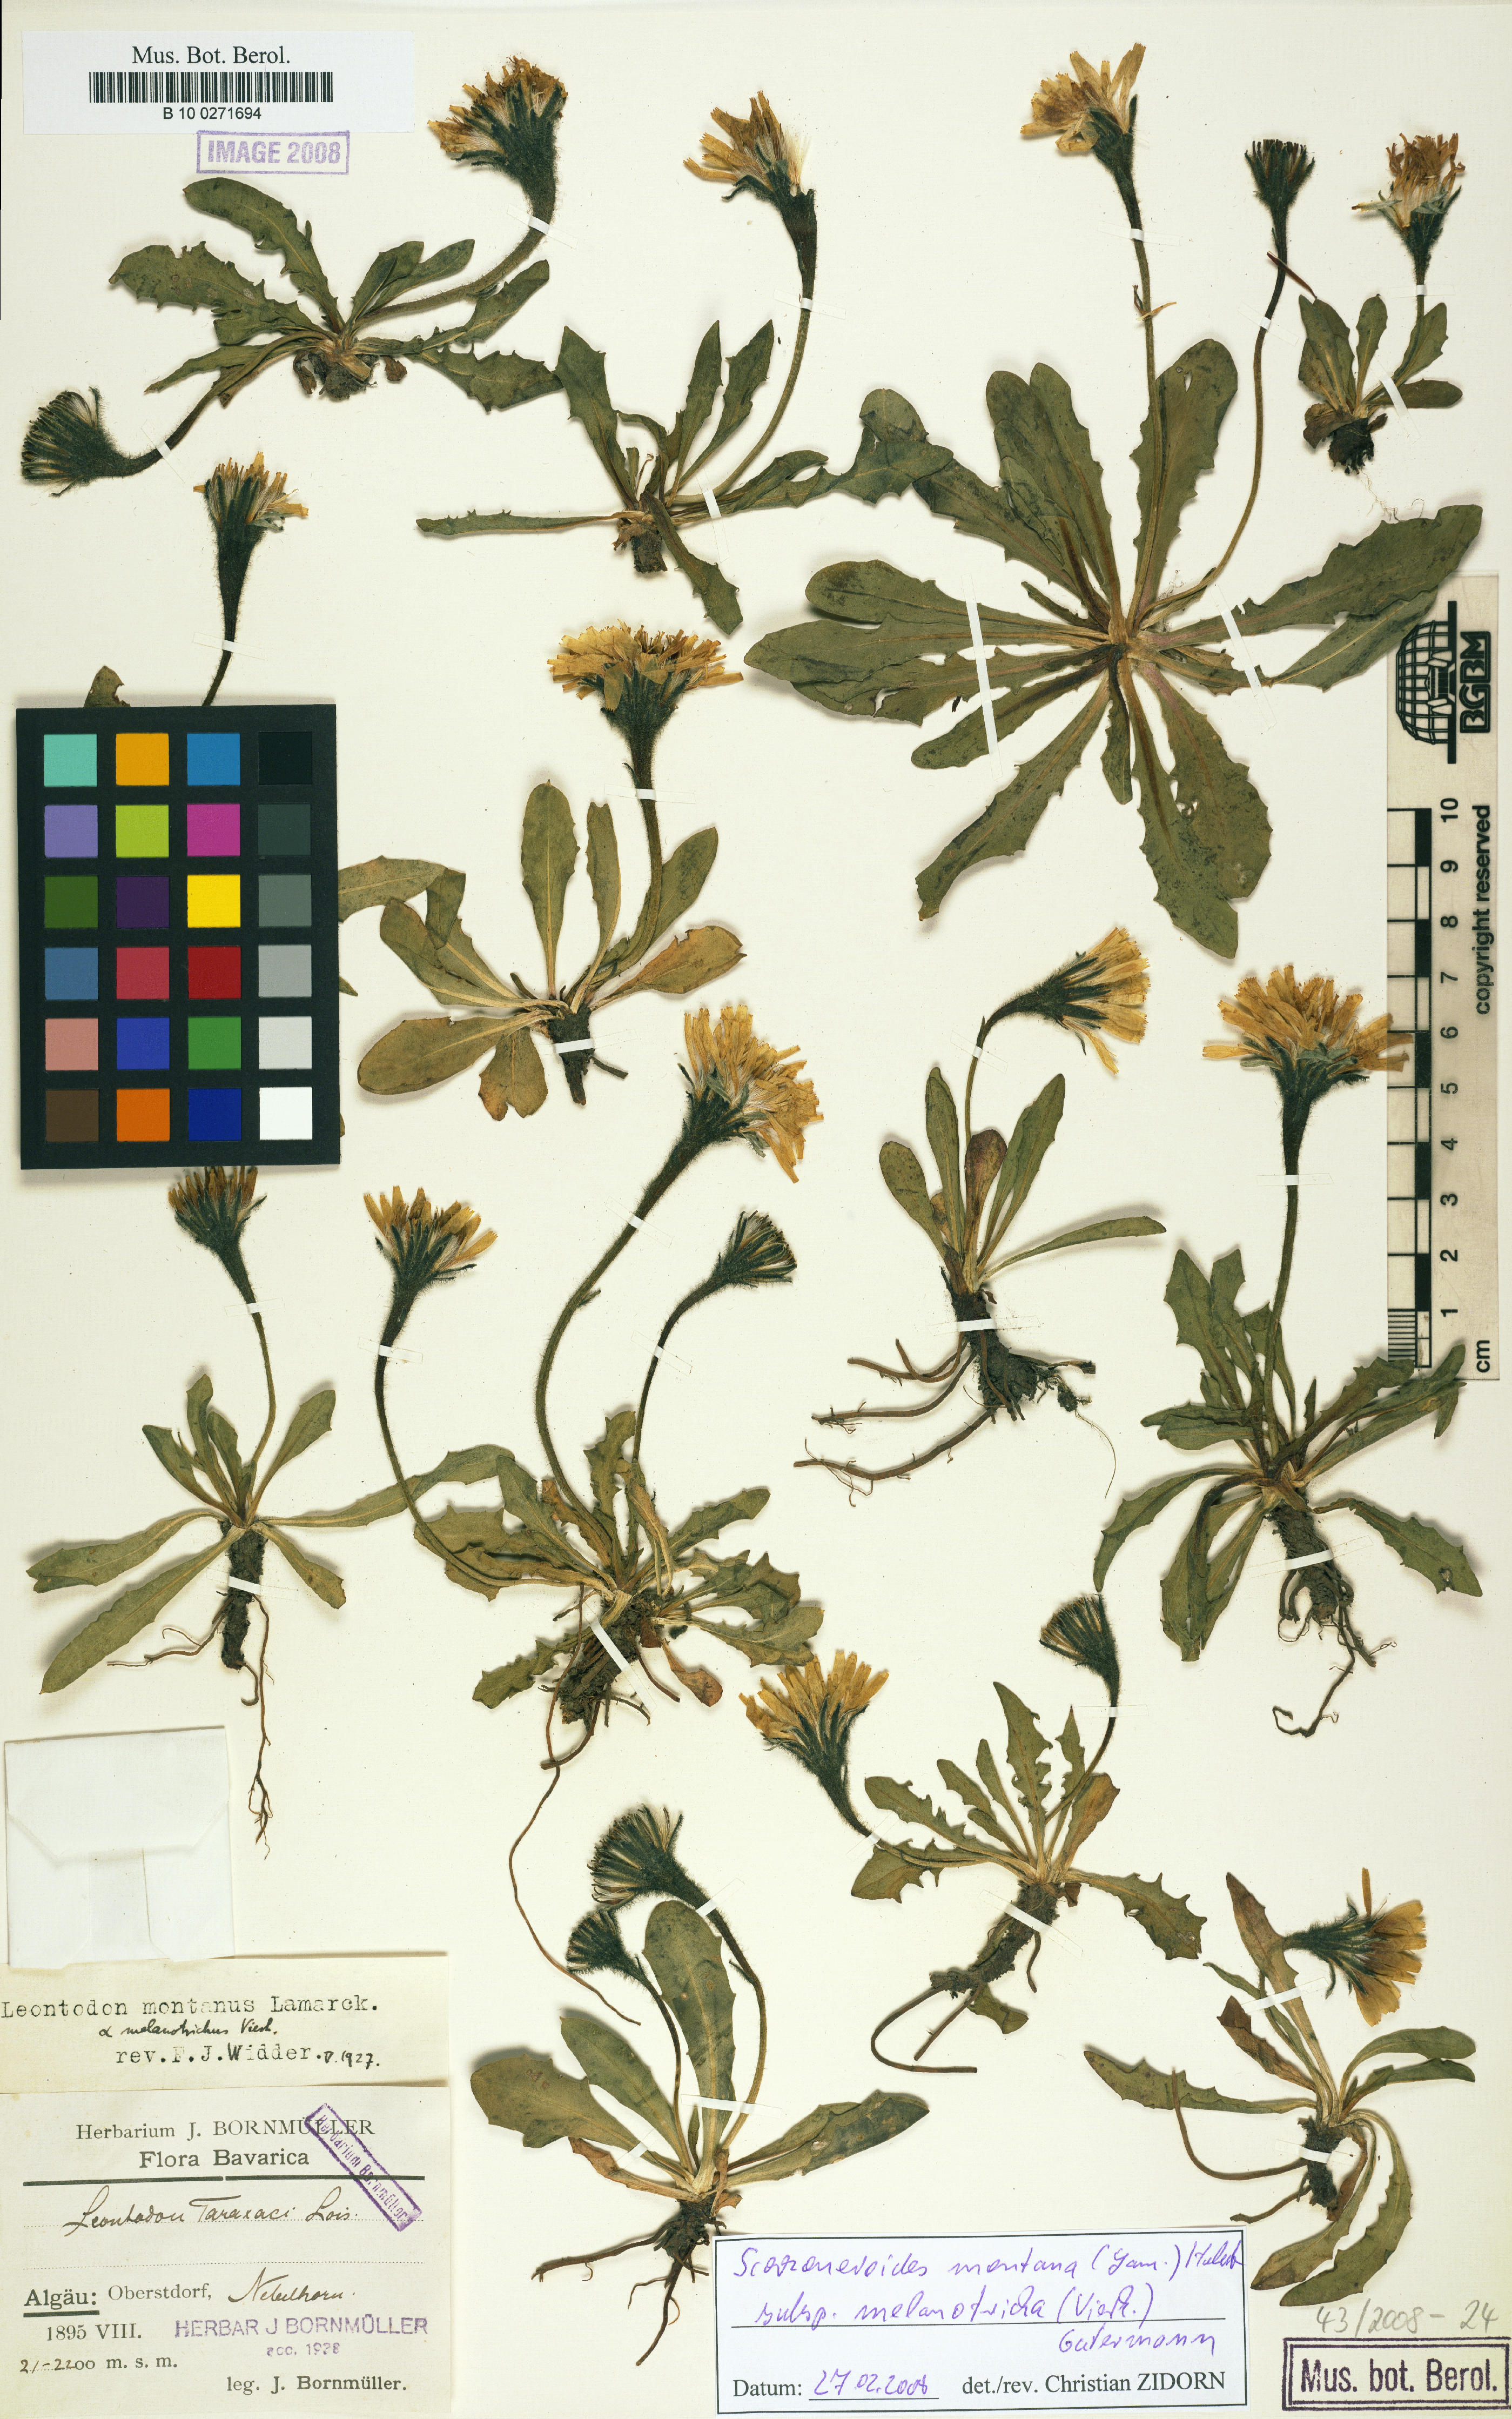 © Botanic Garden and Botanical Museum Berlin-Dahlem, Freie Universität Berlin<br>by Röpert, D. (Ed.) 2000- (continuously updated): Digital specimen images at the Herbarium Berolinense. - Published on the Internet http://ww2.bgbm.org/herbarium/ (Barcode: B 10 0271694 / ImageId: 268462) [accessed 26-Nov-11].<br>